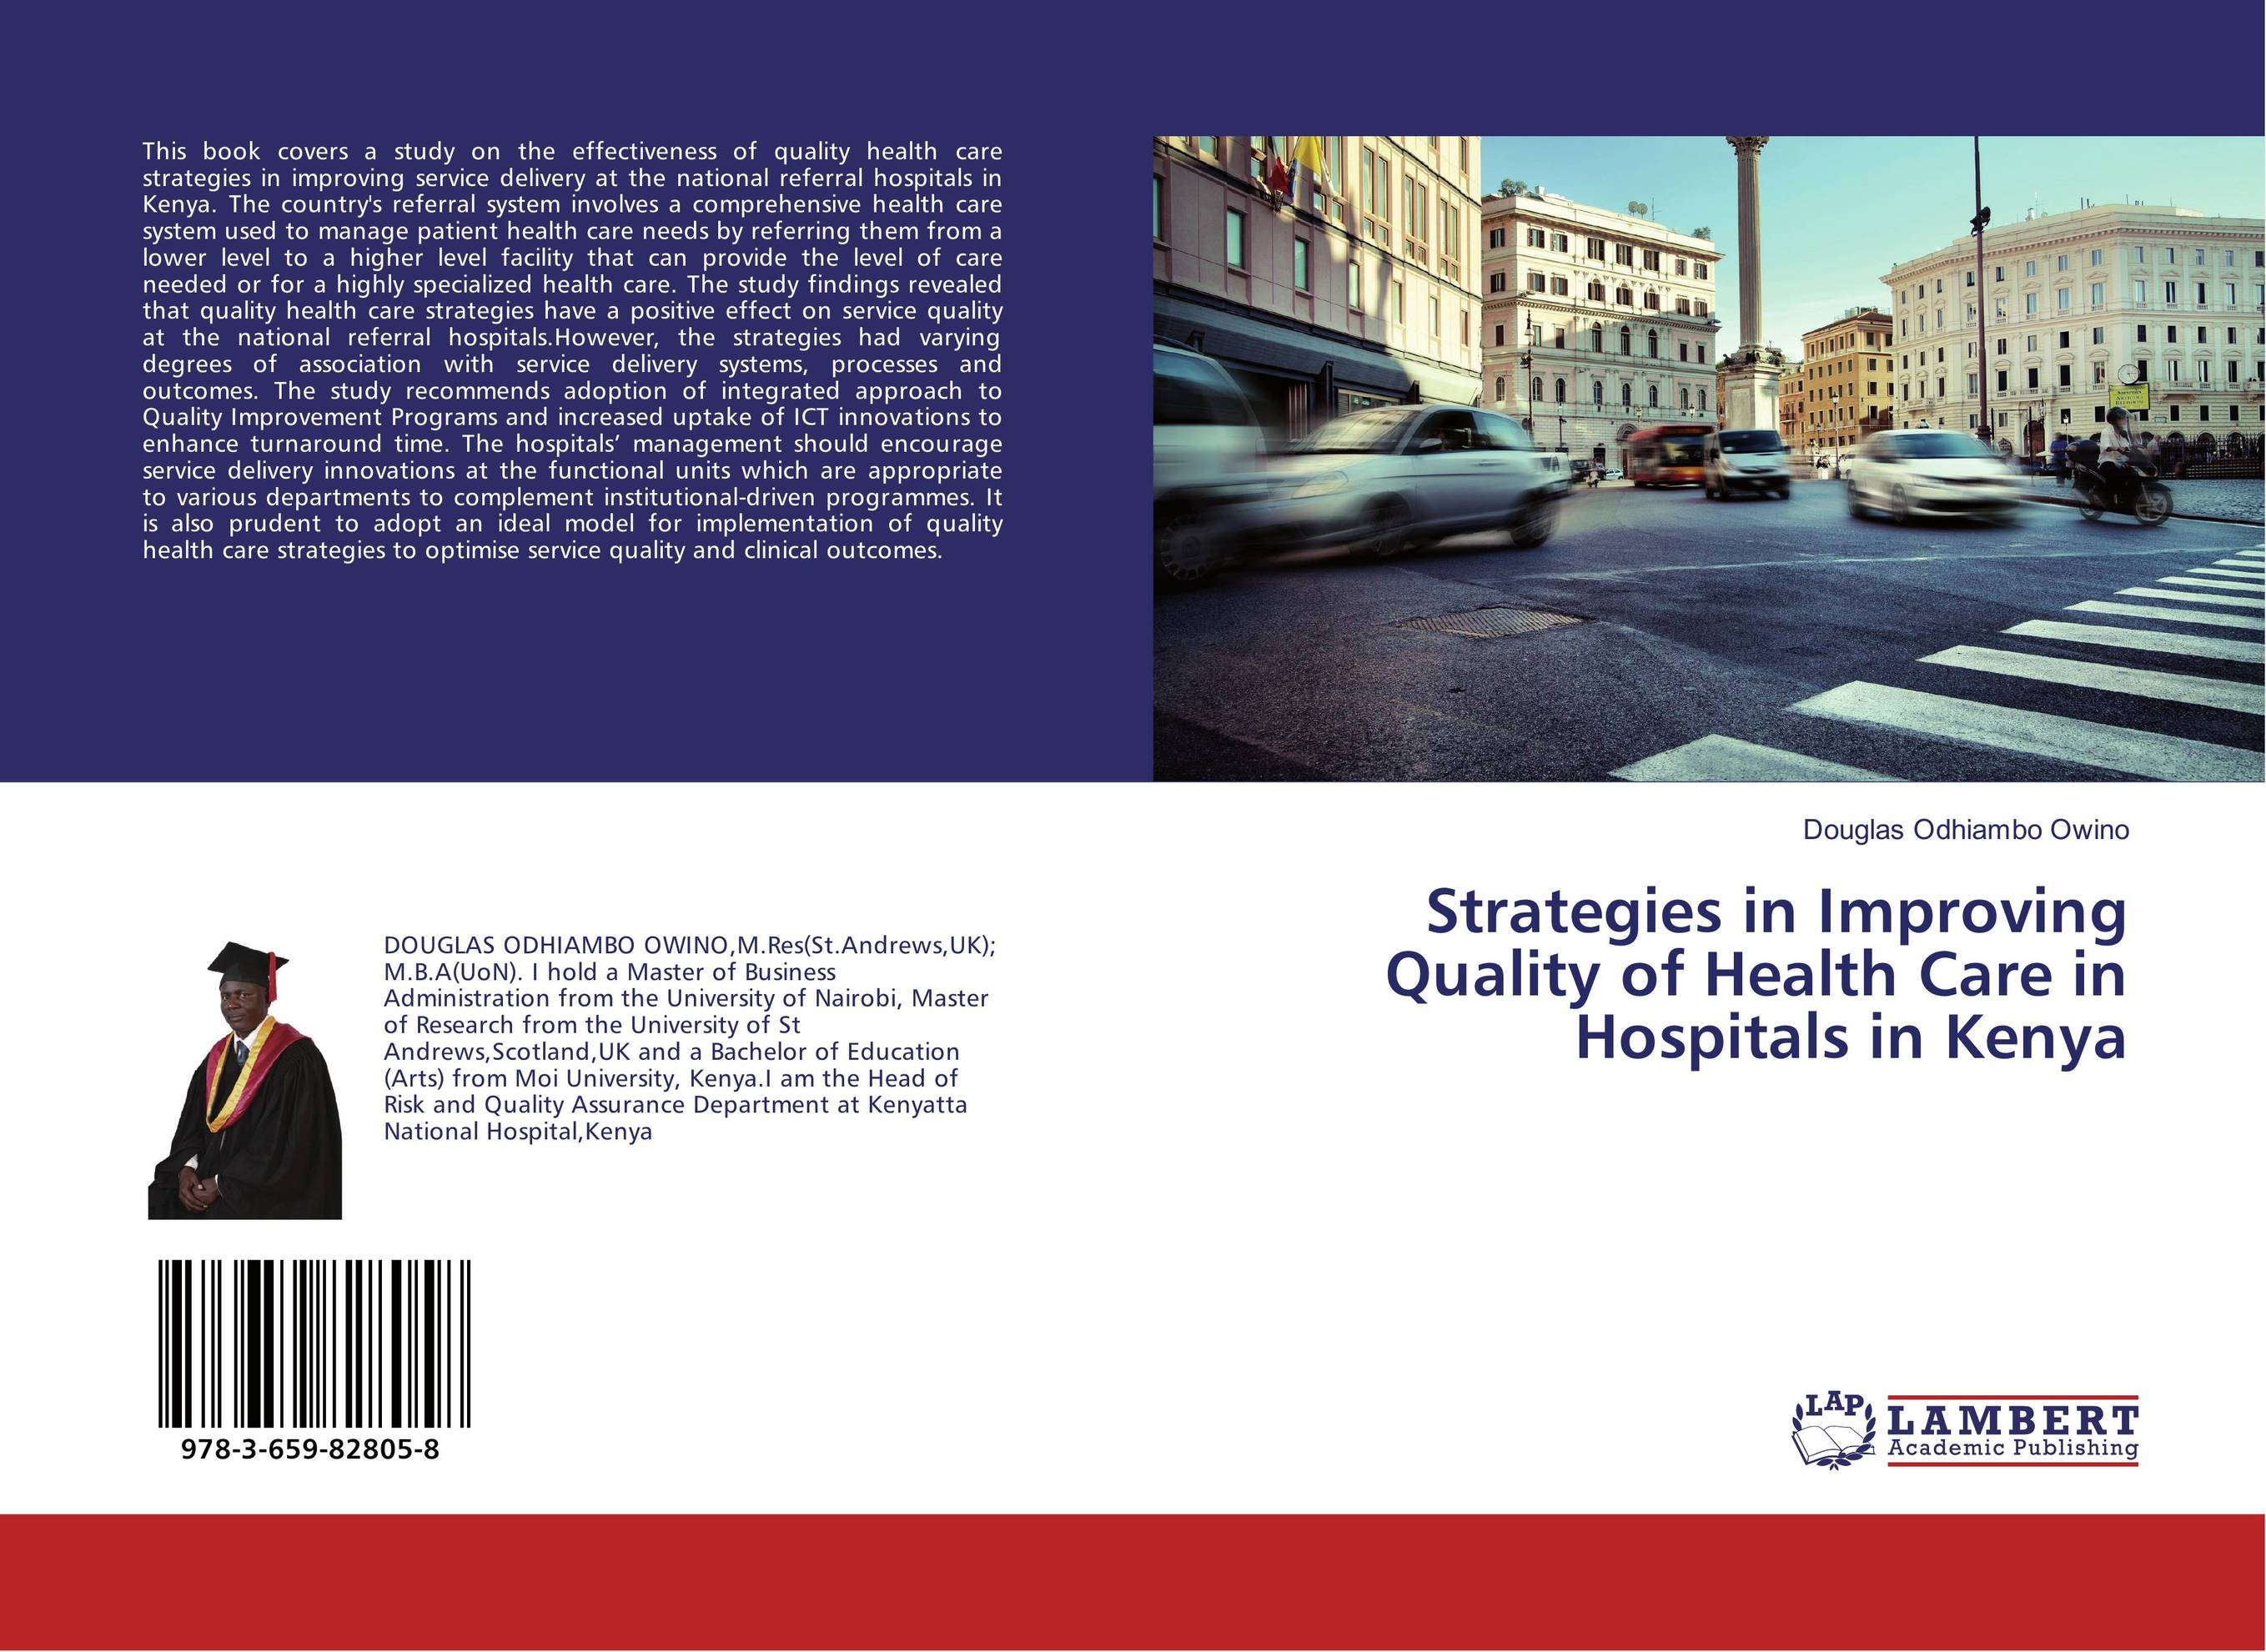 Strategies in Improving Quality of Health Care in Hospitals in Kenya